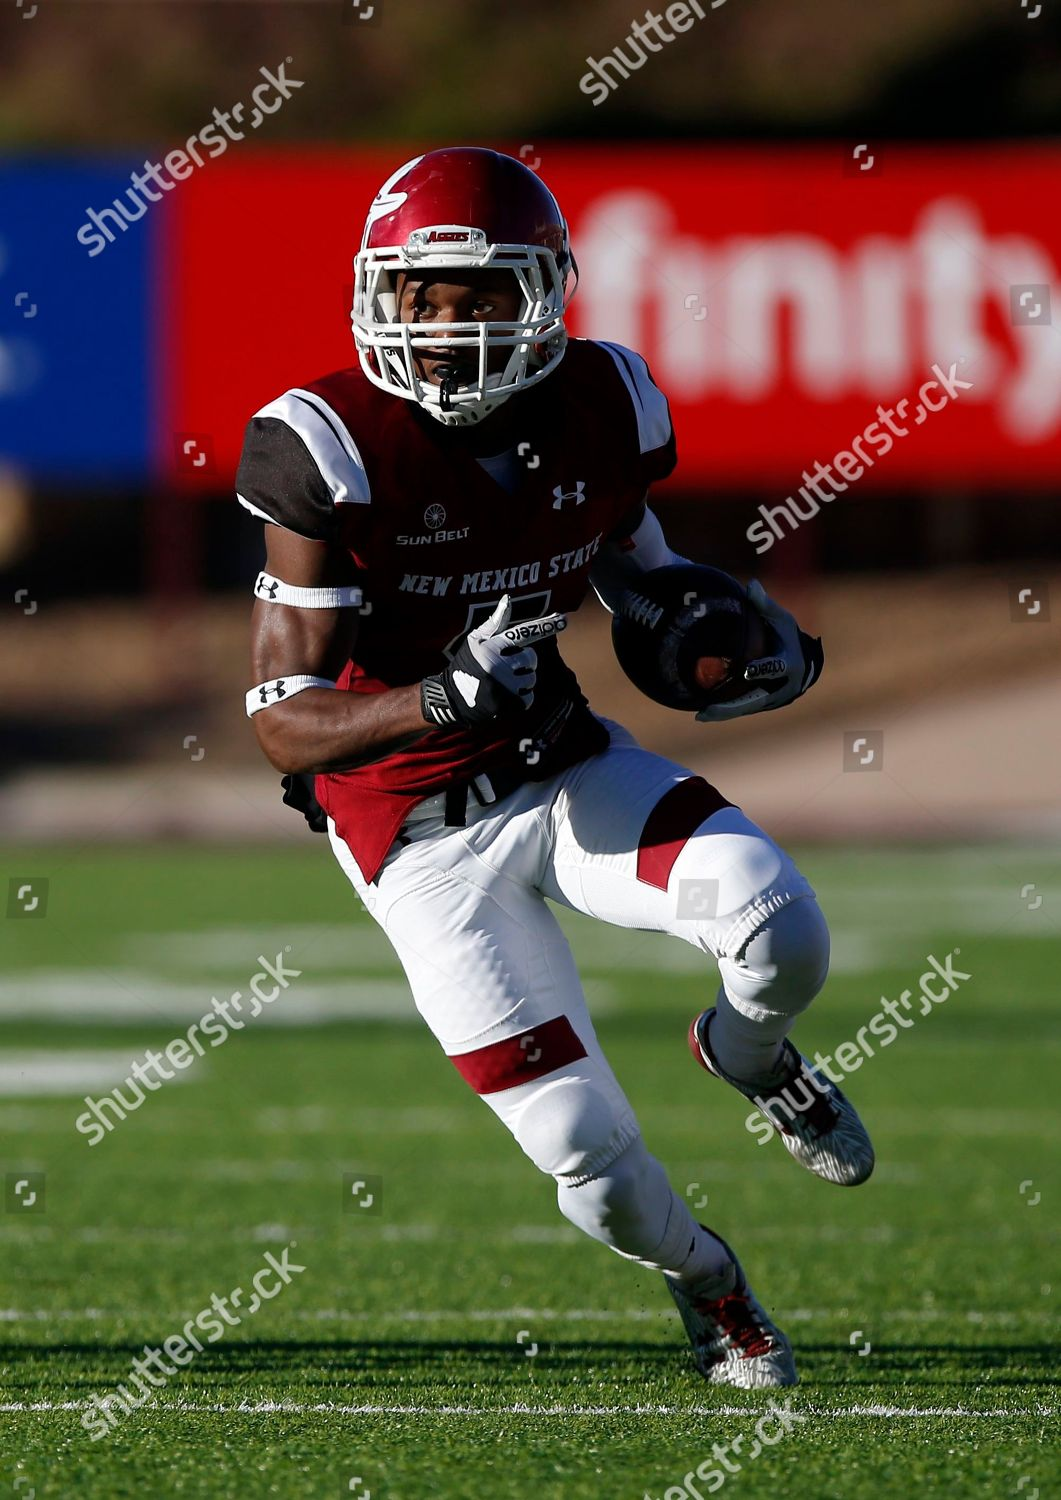 Tyrian Taylor New Mexico State wide receiver Editorial Stock